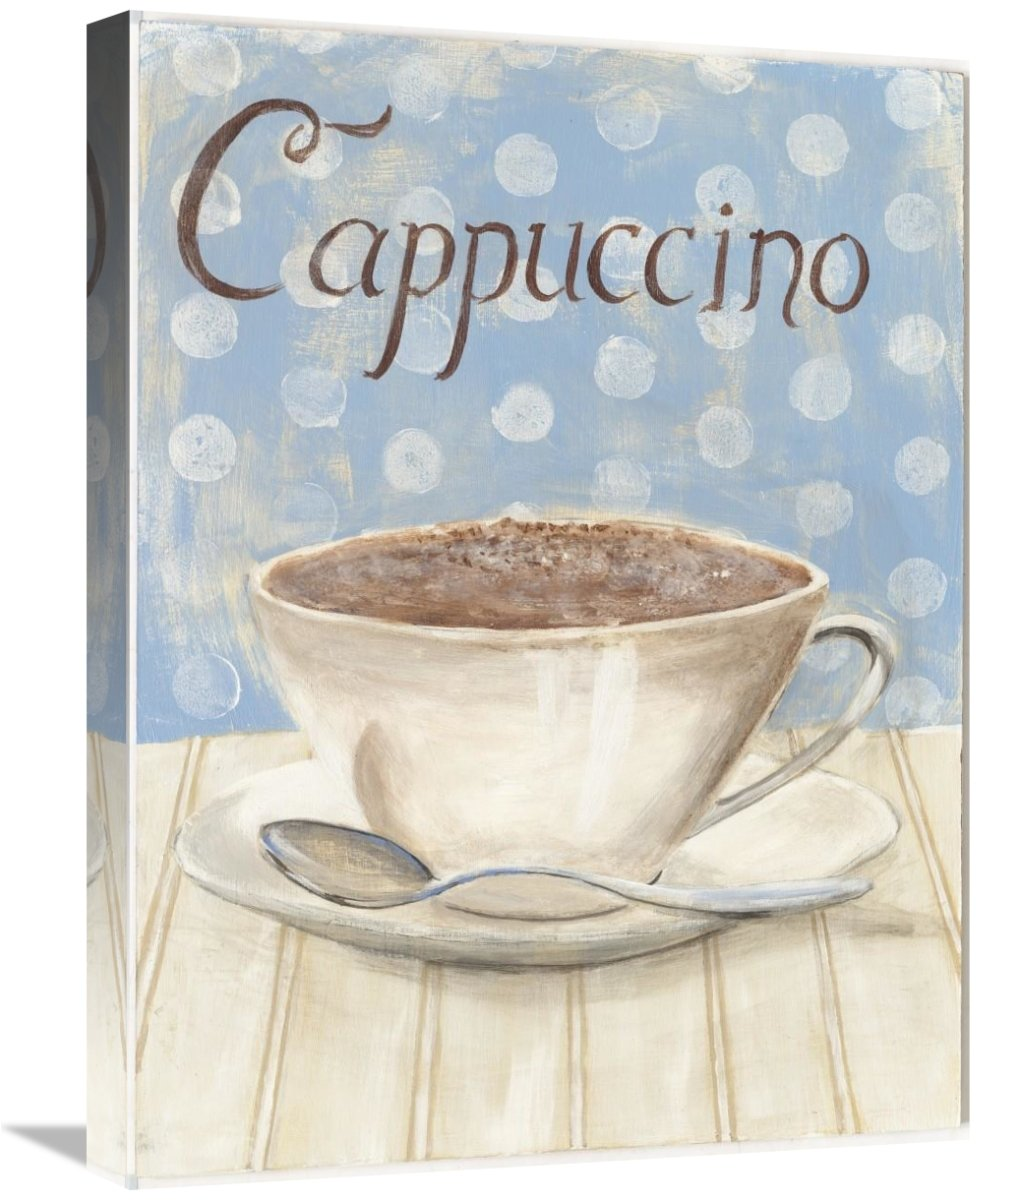 Global Gallery Cappuccino Giclee Stretched Canvas Artwork 18 x 24